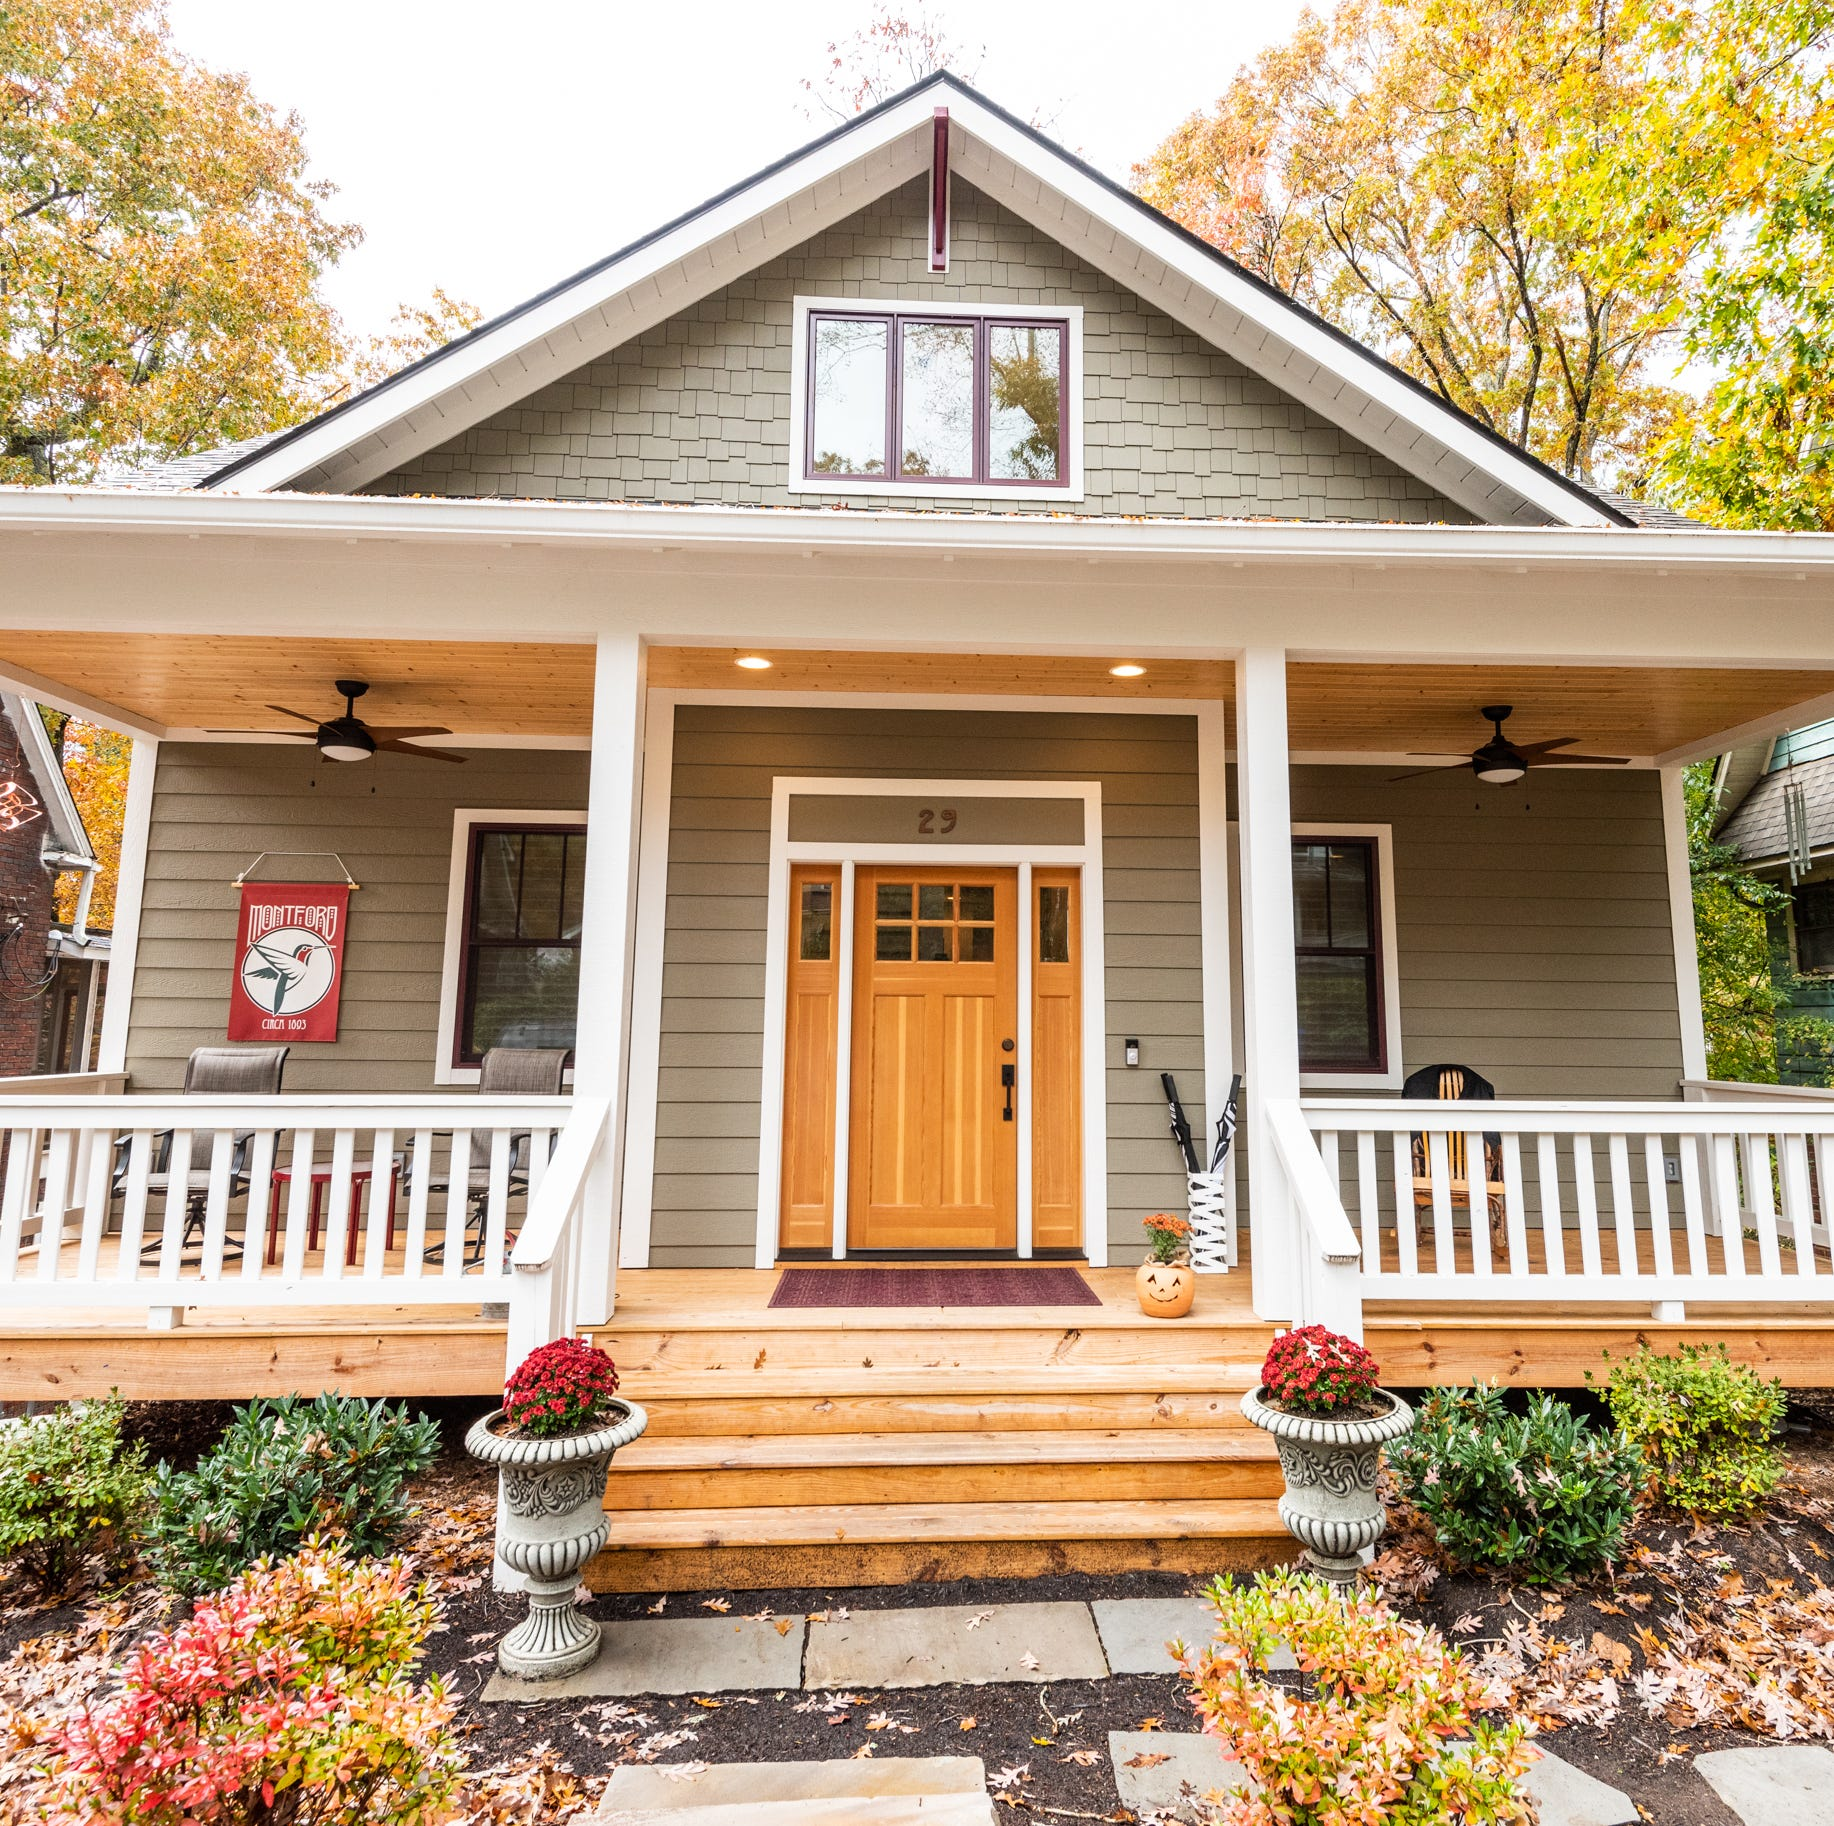 Home of the Week: Sneak peek of Montford Holiday Tour of Homes